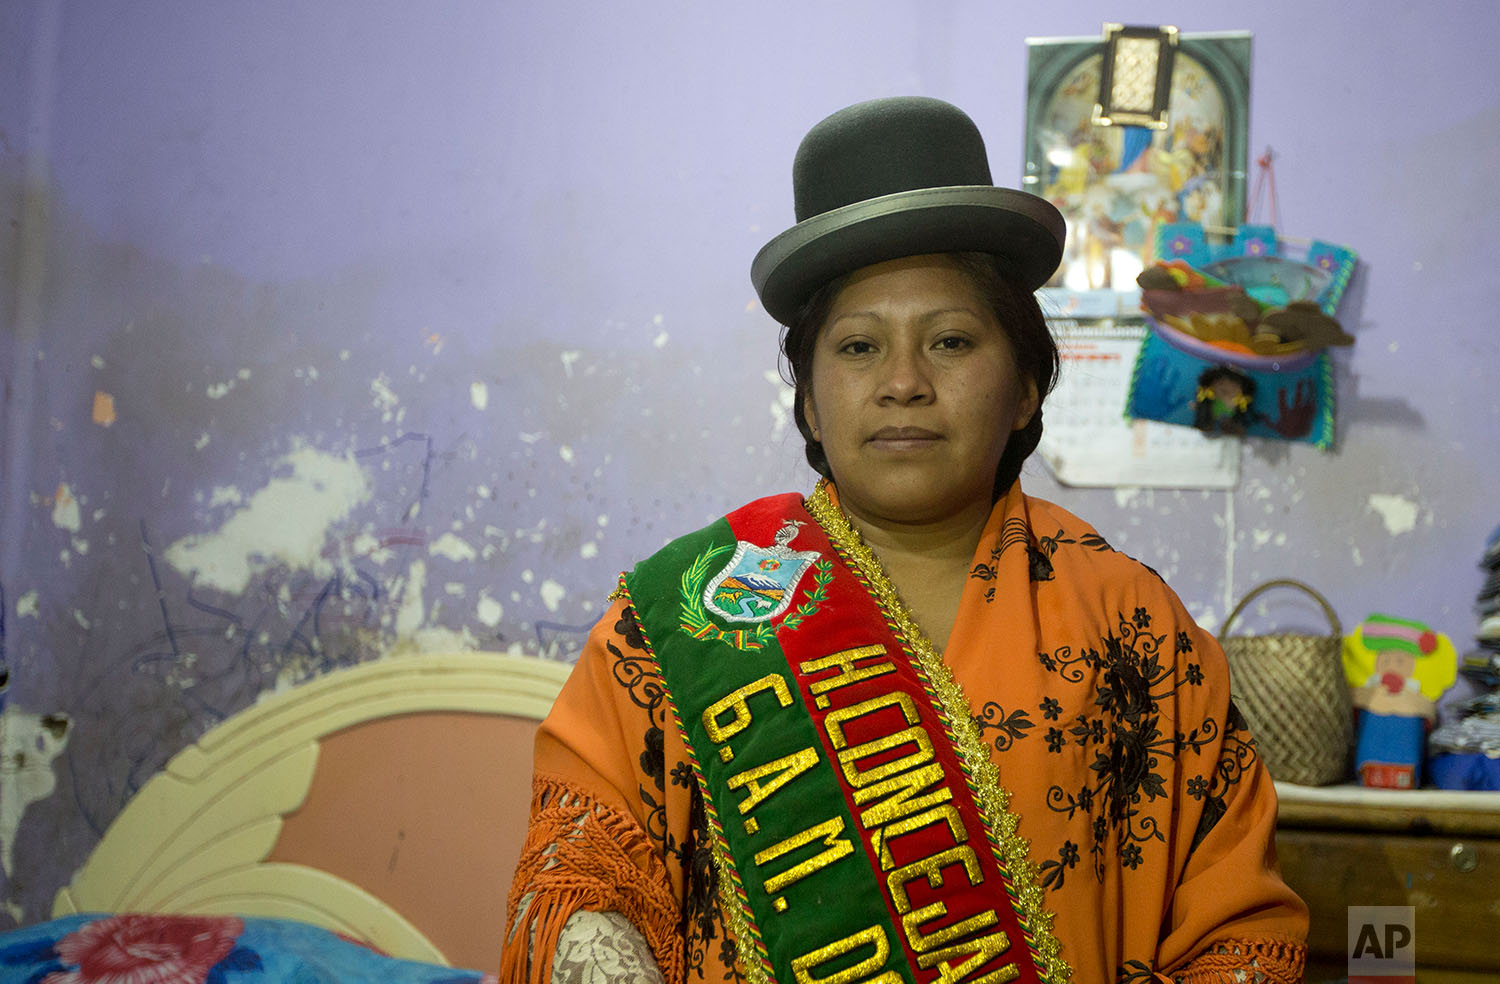 In this June 29, 2018 photo, Callapa Councilwoman Monica Paye, who is under house arrest, poses for a photo, in La Paz, Bolivia.  (AP Photo/Juan Karita)